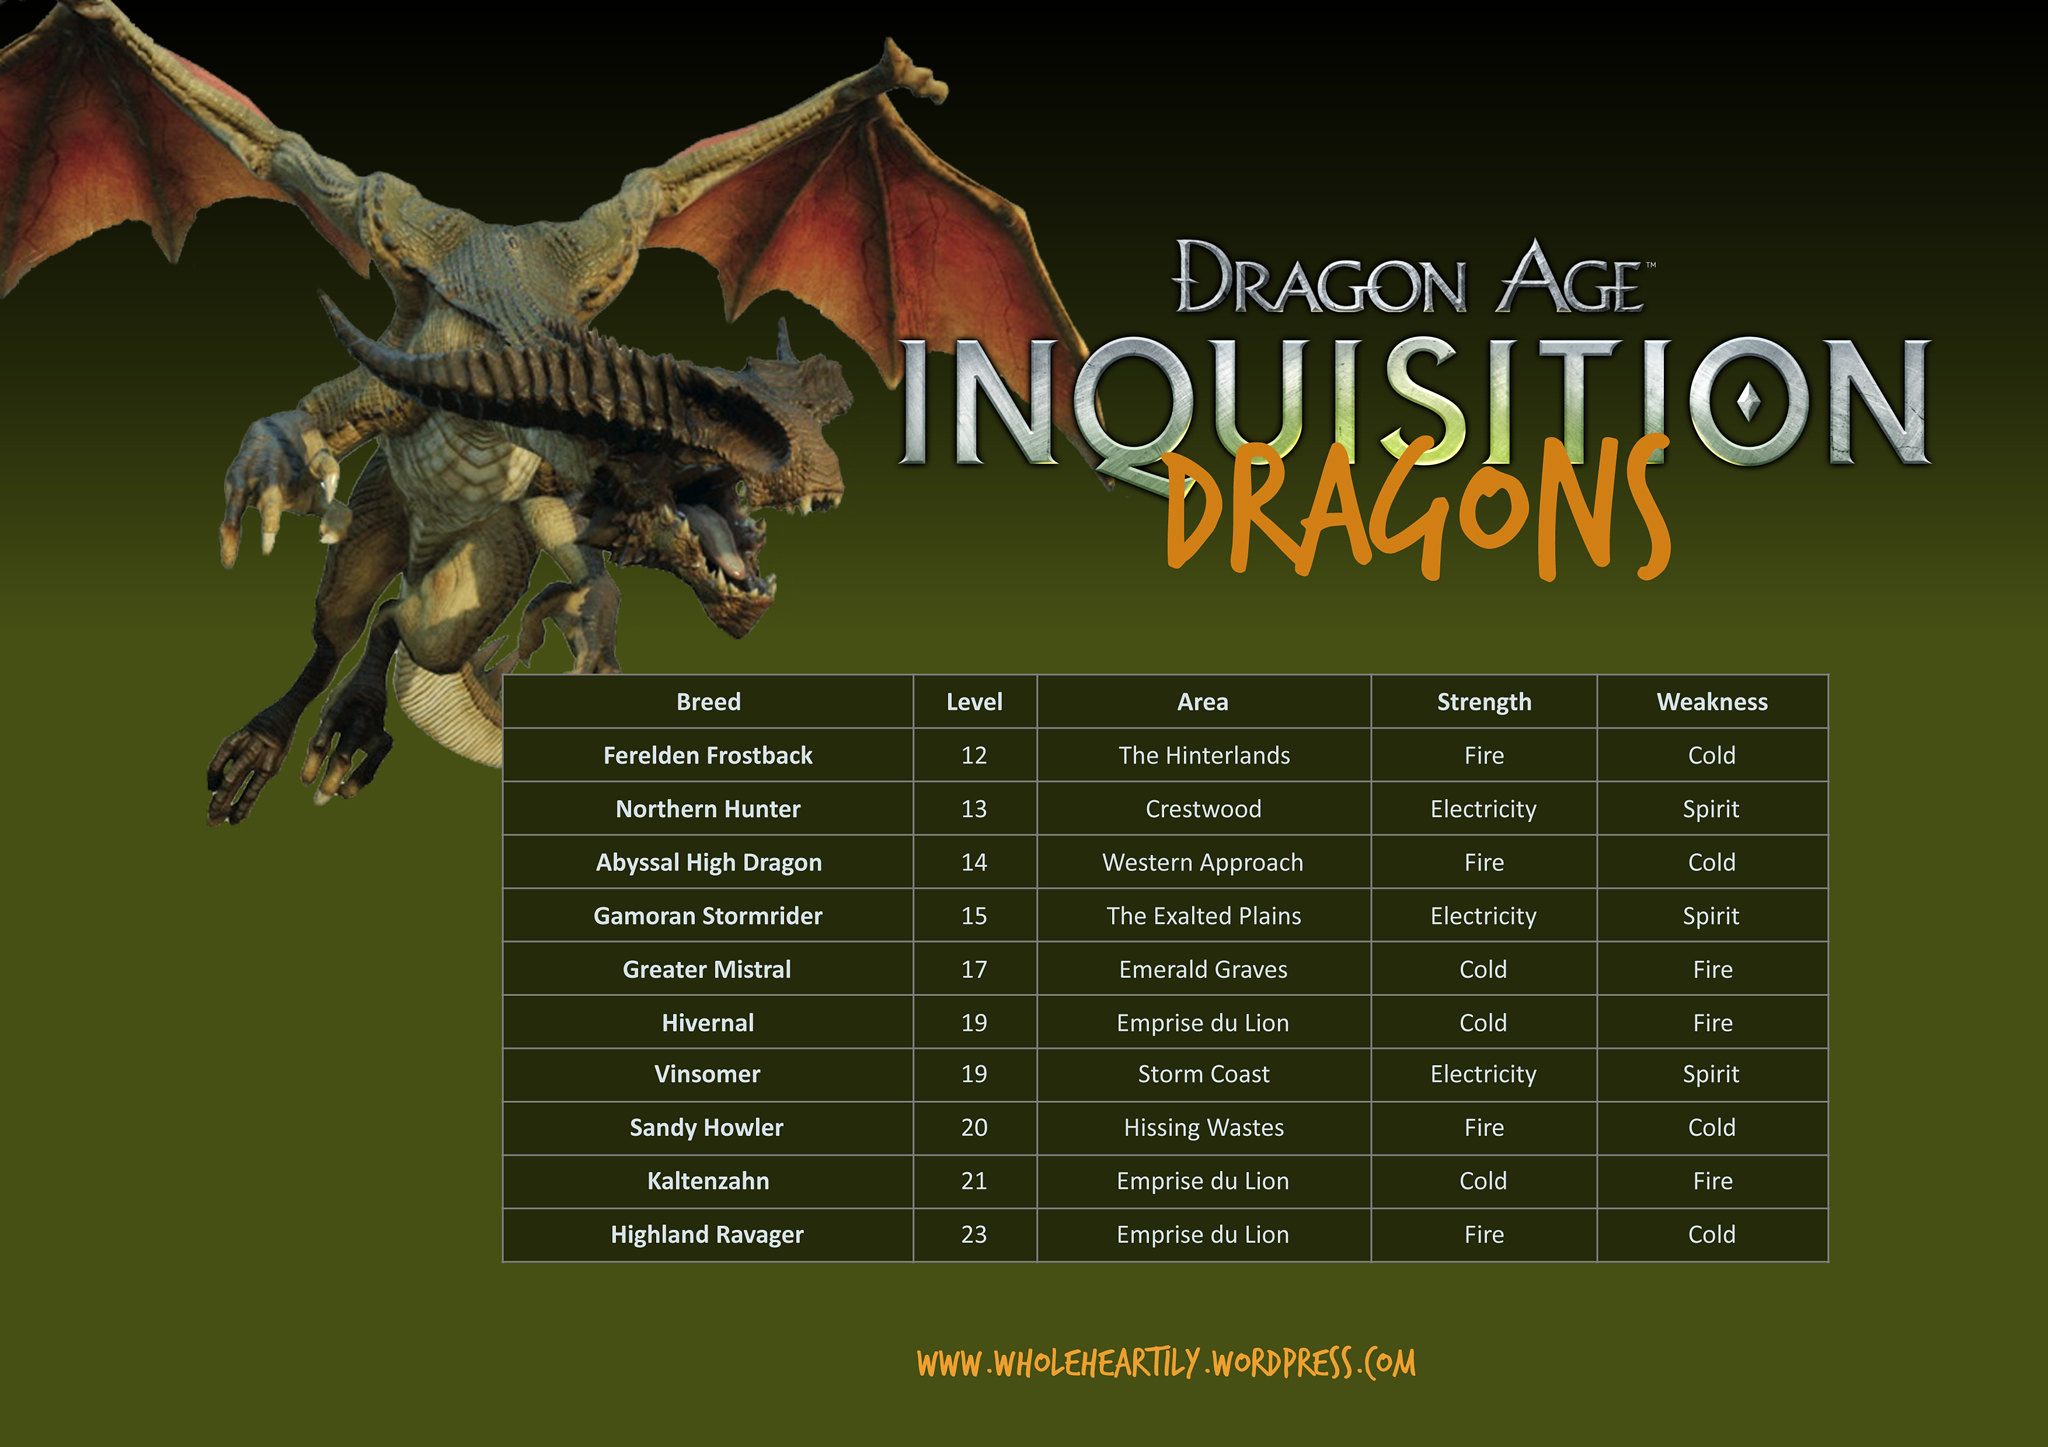 Dragon Age: Inquisition Dragons